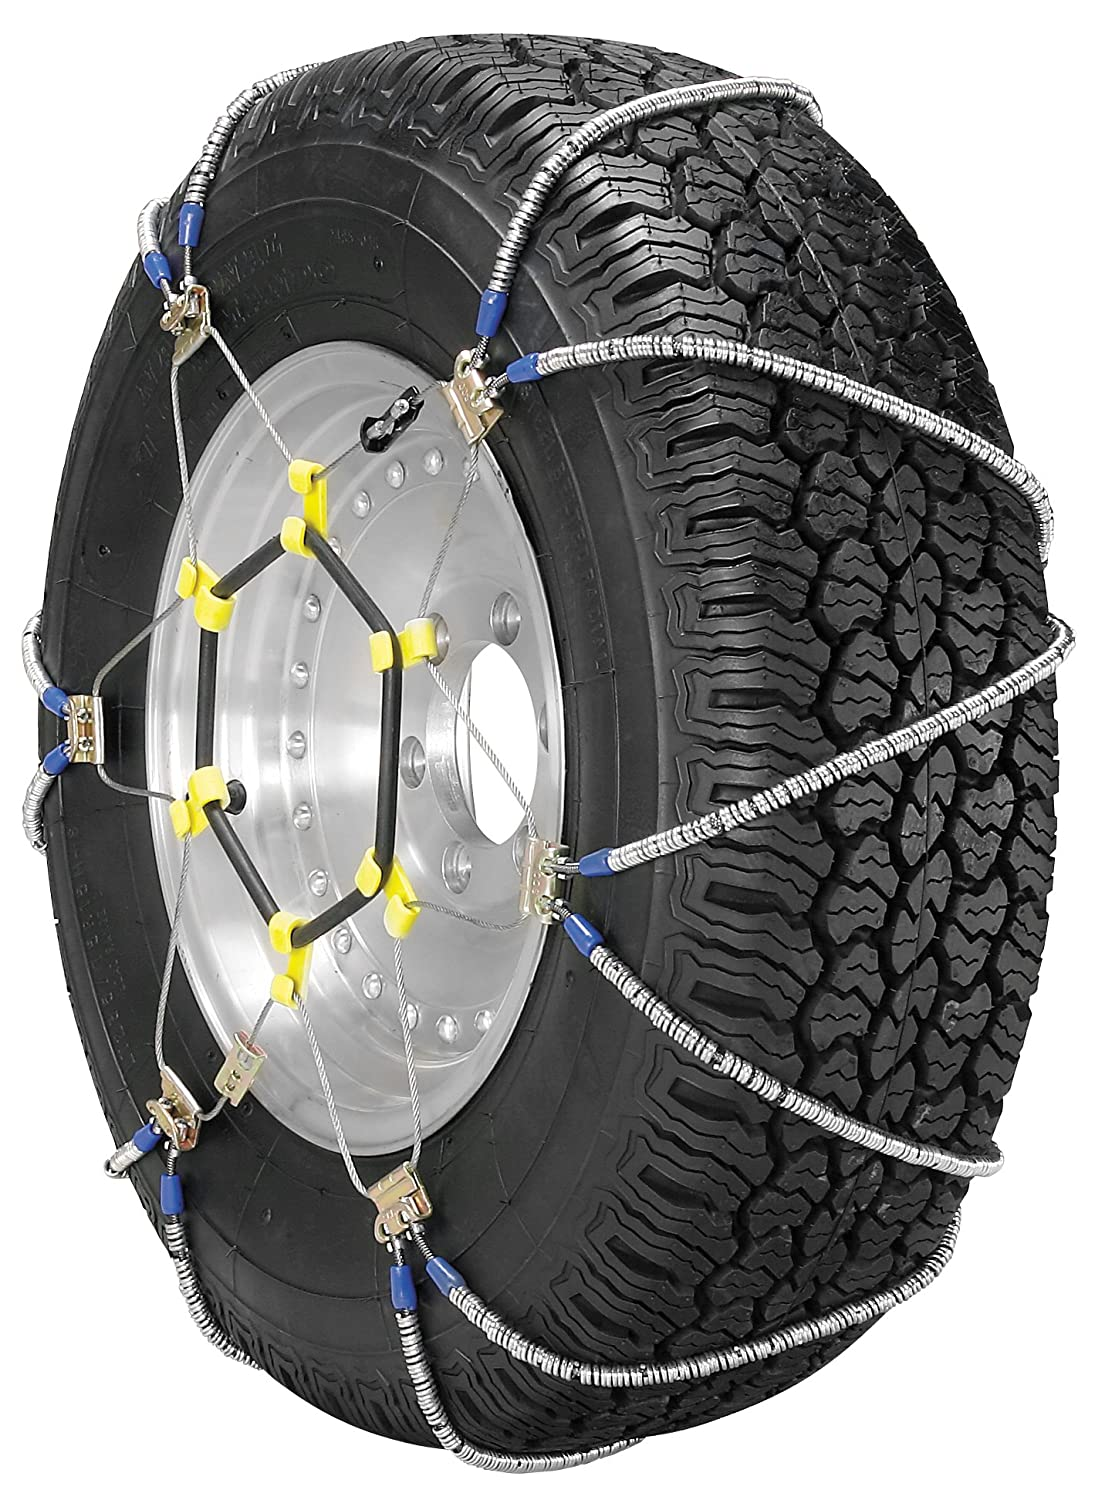 roto undercarriage now in low classic both is article trucking for compact news america clearance your safety because rotogrip by rudchains and automatic chains important based offers vehicles